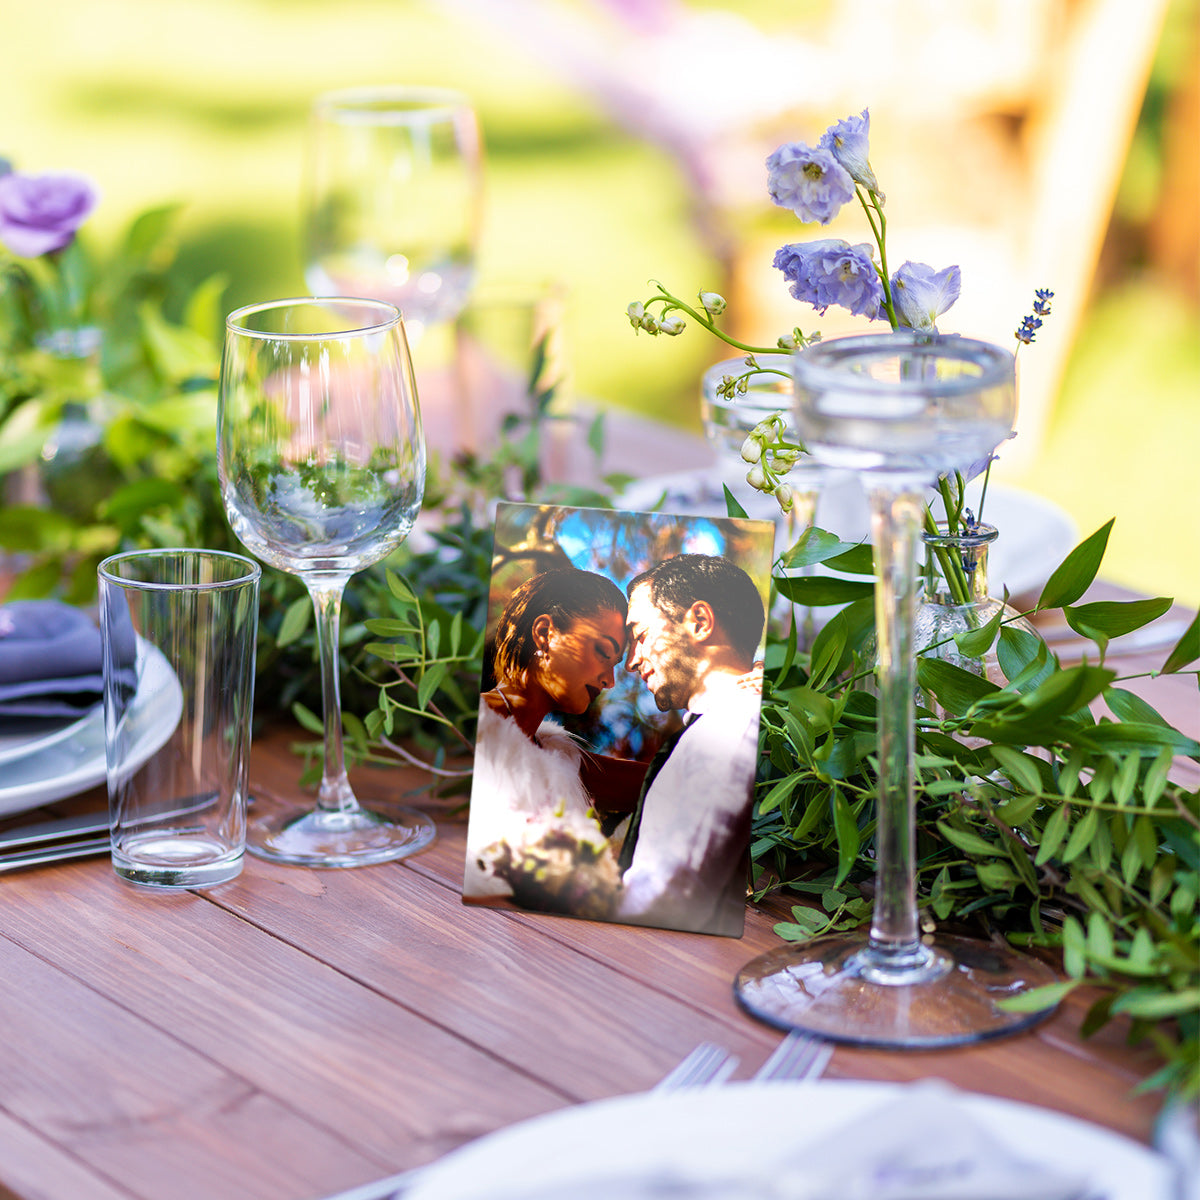 Outdoor Table Decor with a Metal Mini Photo Print